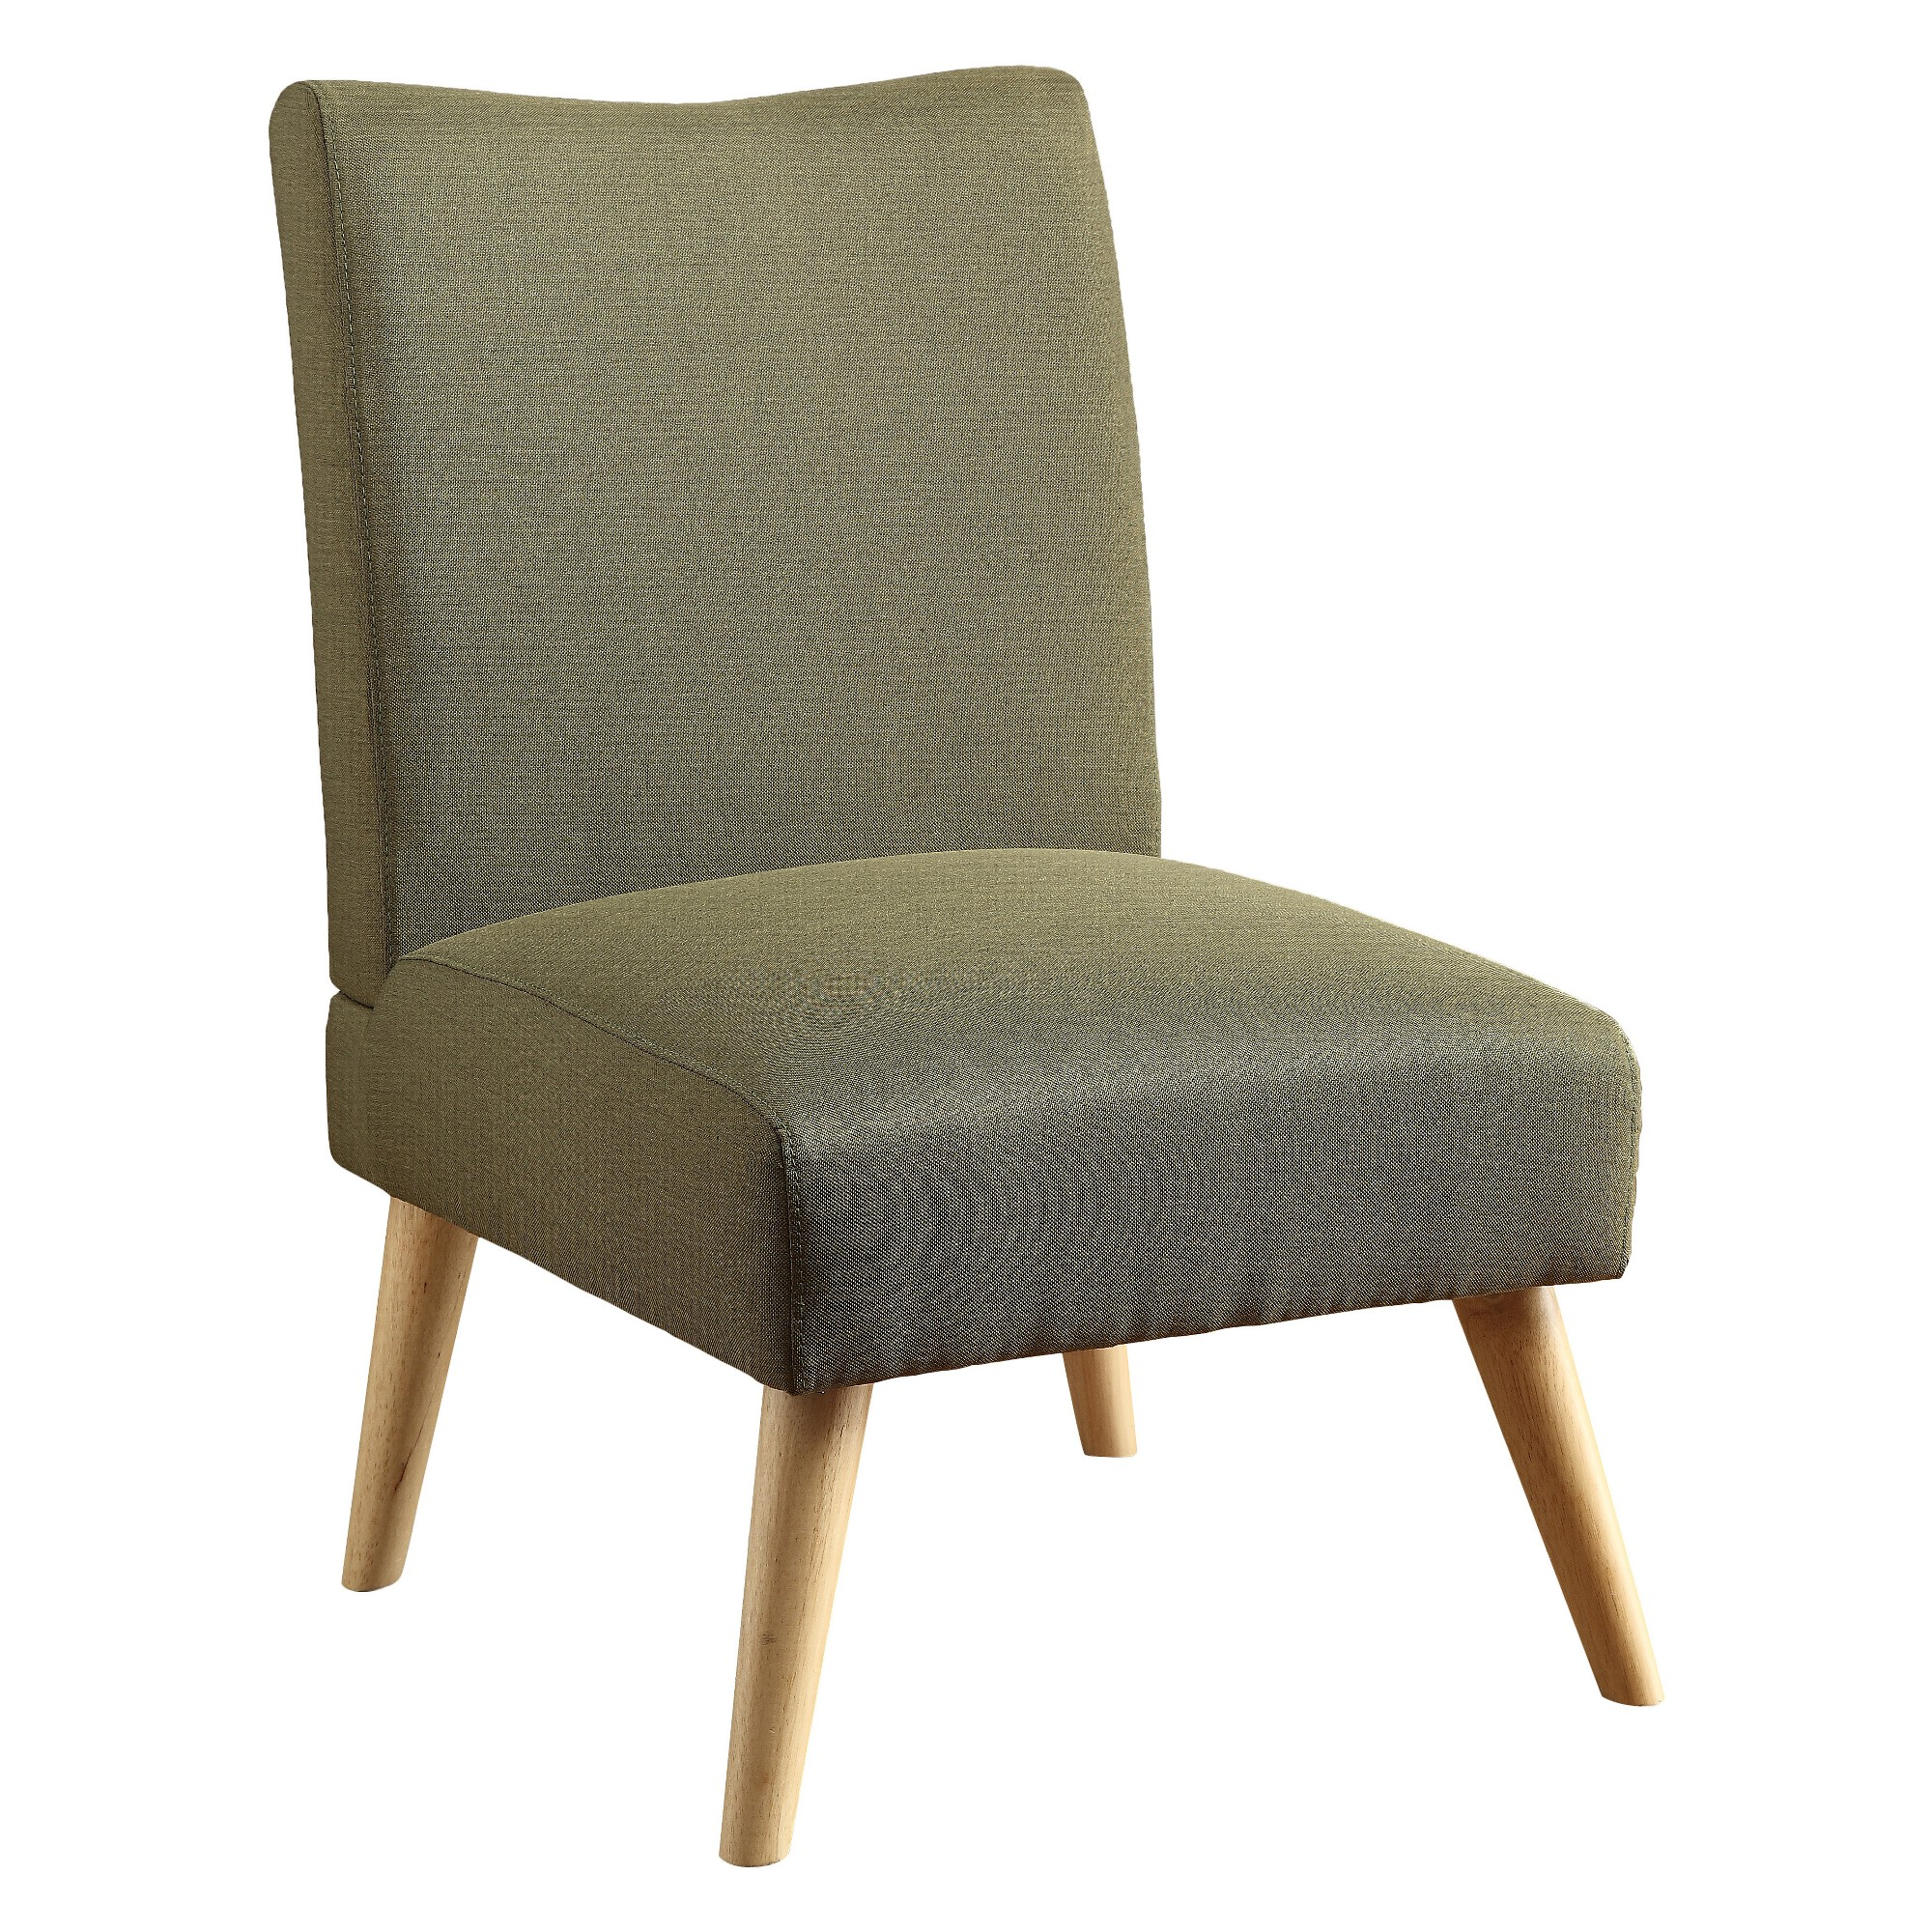 Charlton Mid - Century Modern Accent Chair Green - Homes: Inside + Out